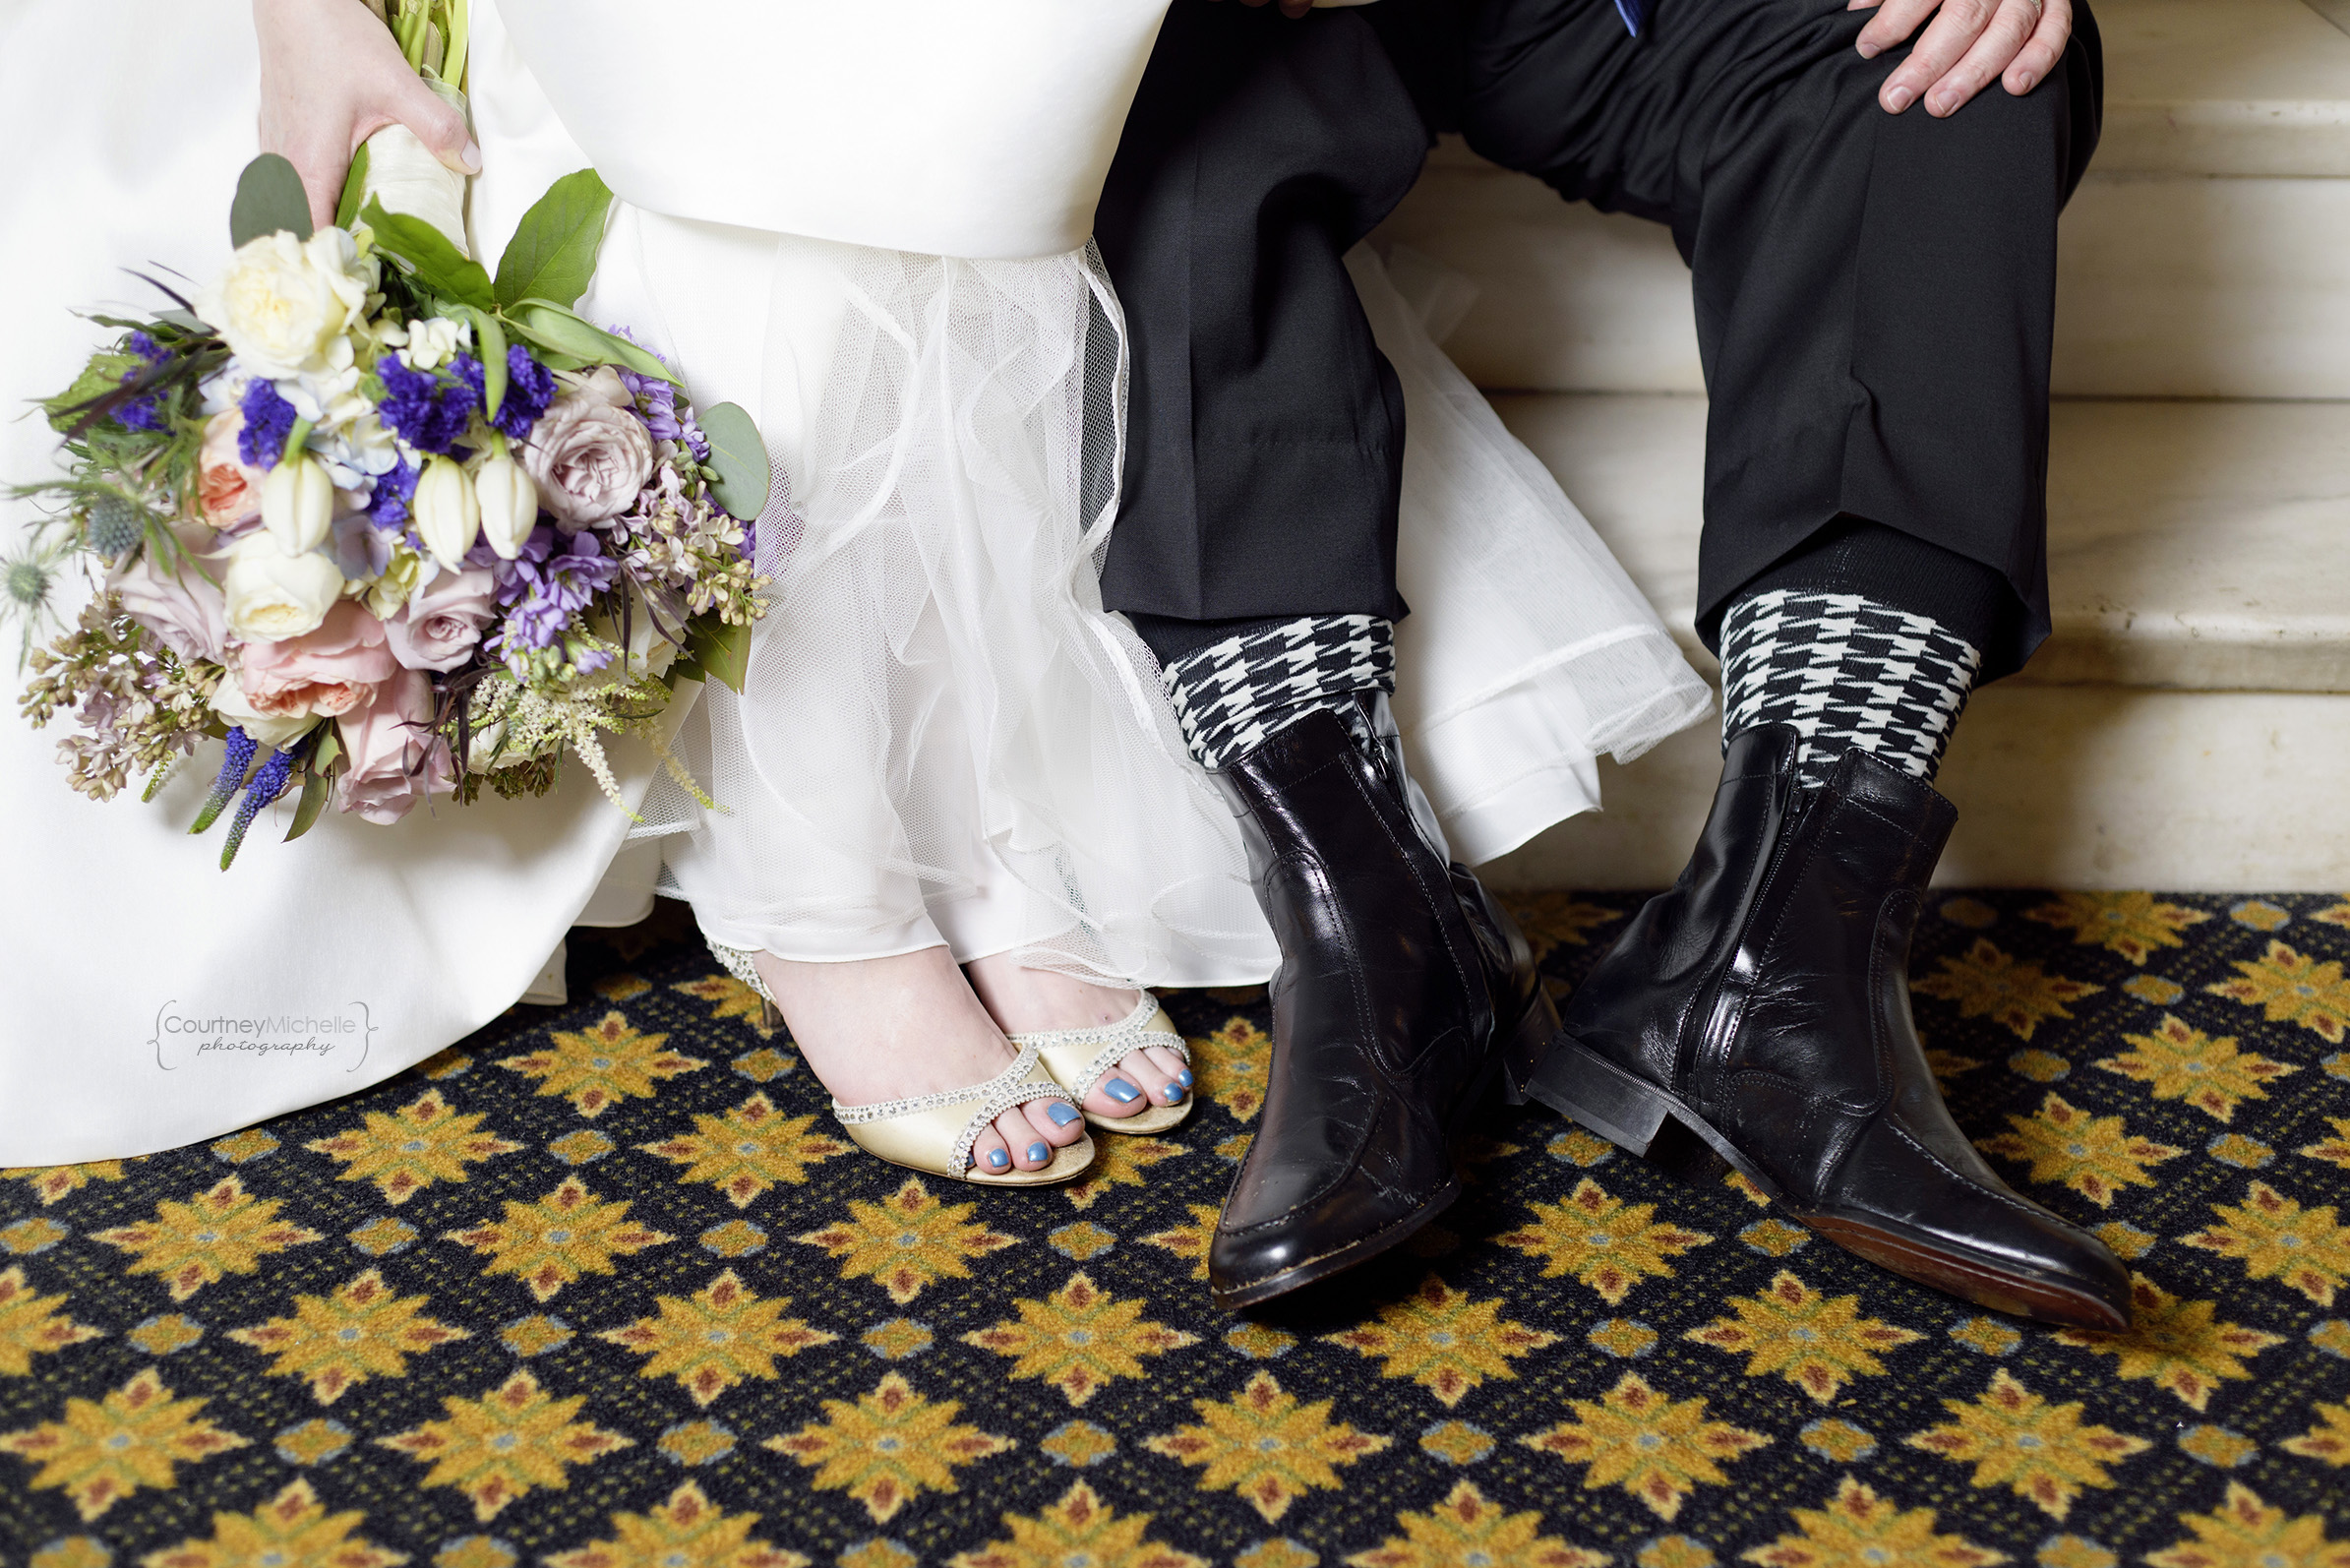 chicago-wedding-photographer-south-shore-cultural-center-bride-groom-shoes©COPYRIGHTCMP-8850.jpg